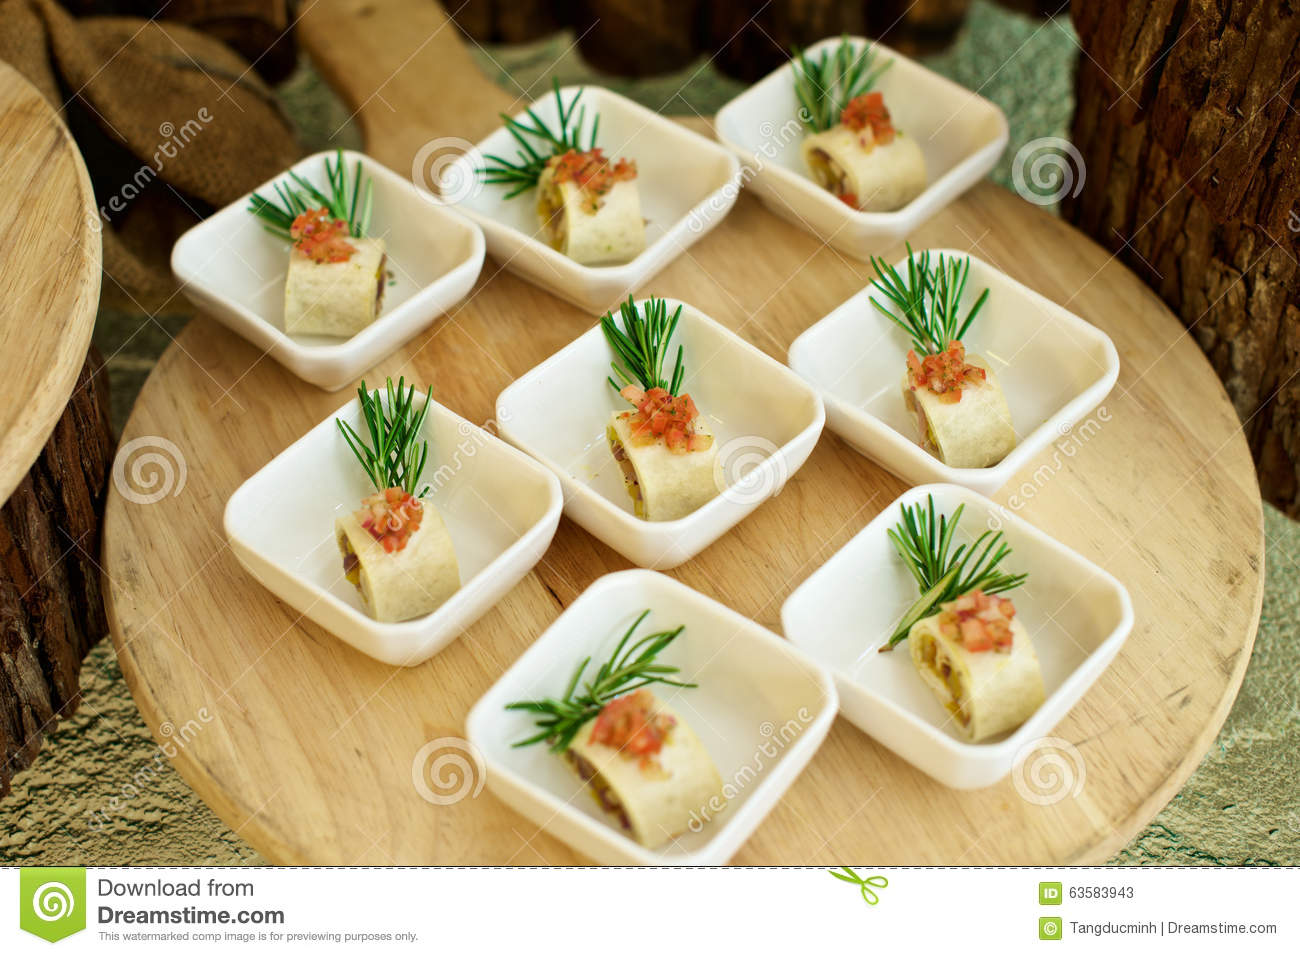 Delicious canap s starters stock photo image 63583943 for Canape restaurant